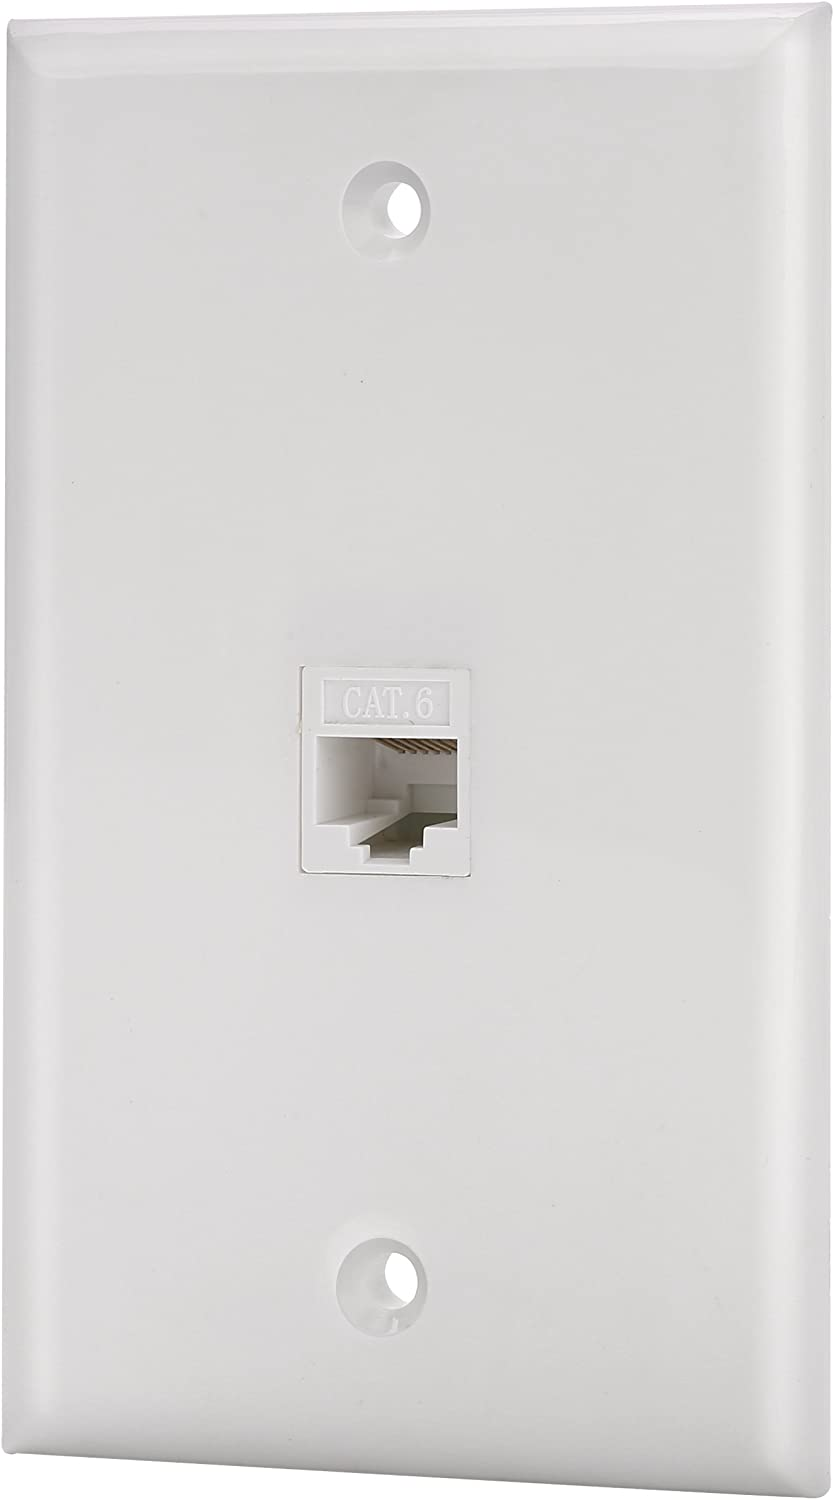 Poin Ethernet Wall Jack Wiring